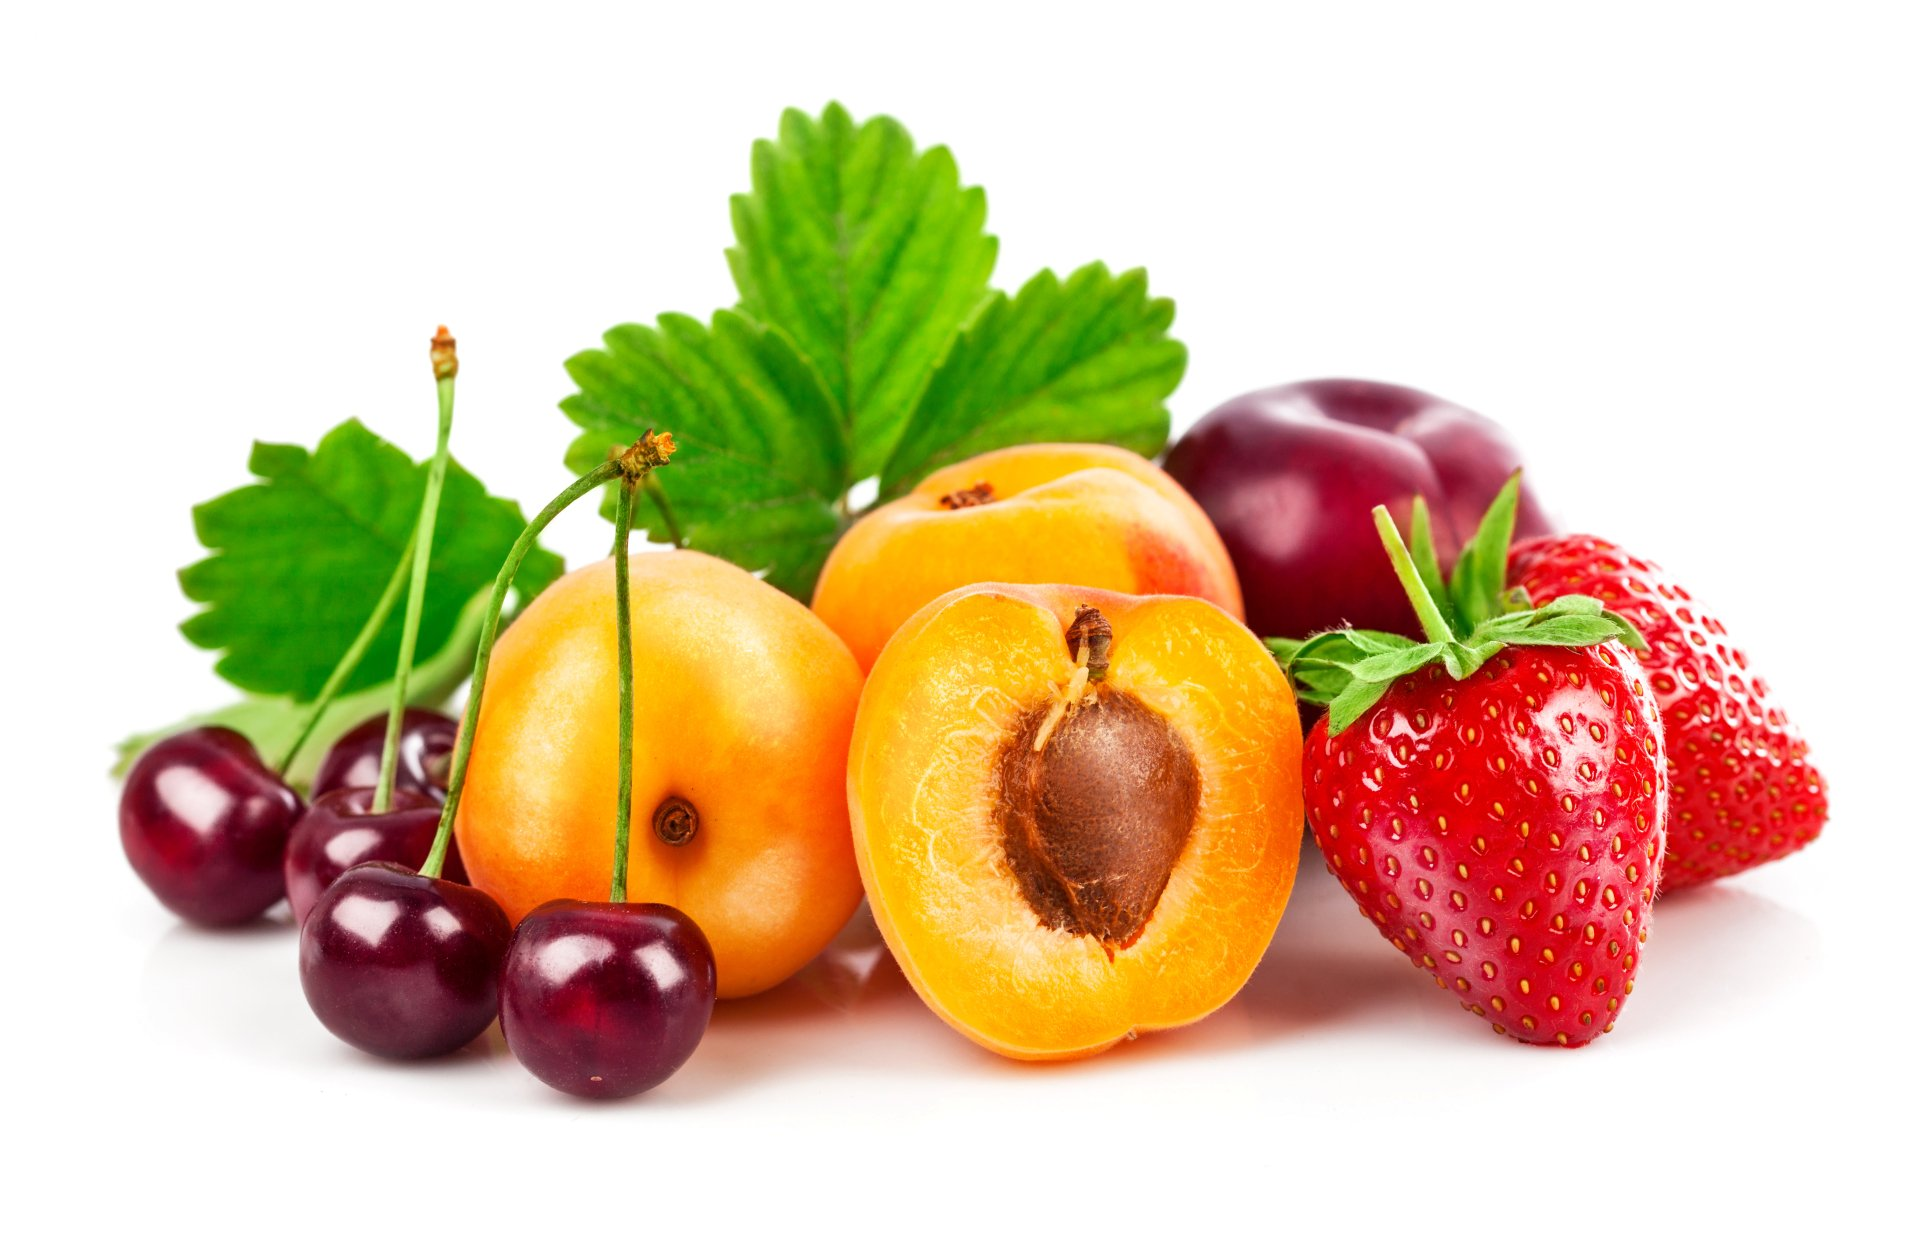 Wallpapers Fruit Strawberry Cherry Apricot Foliage White background Food